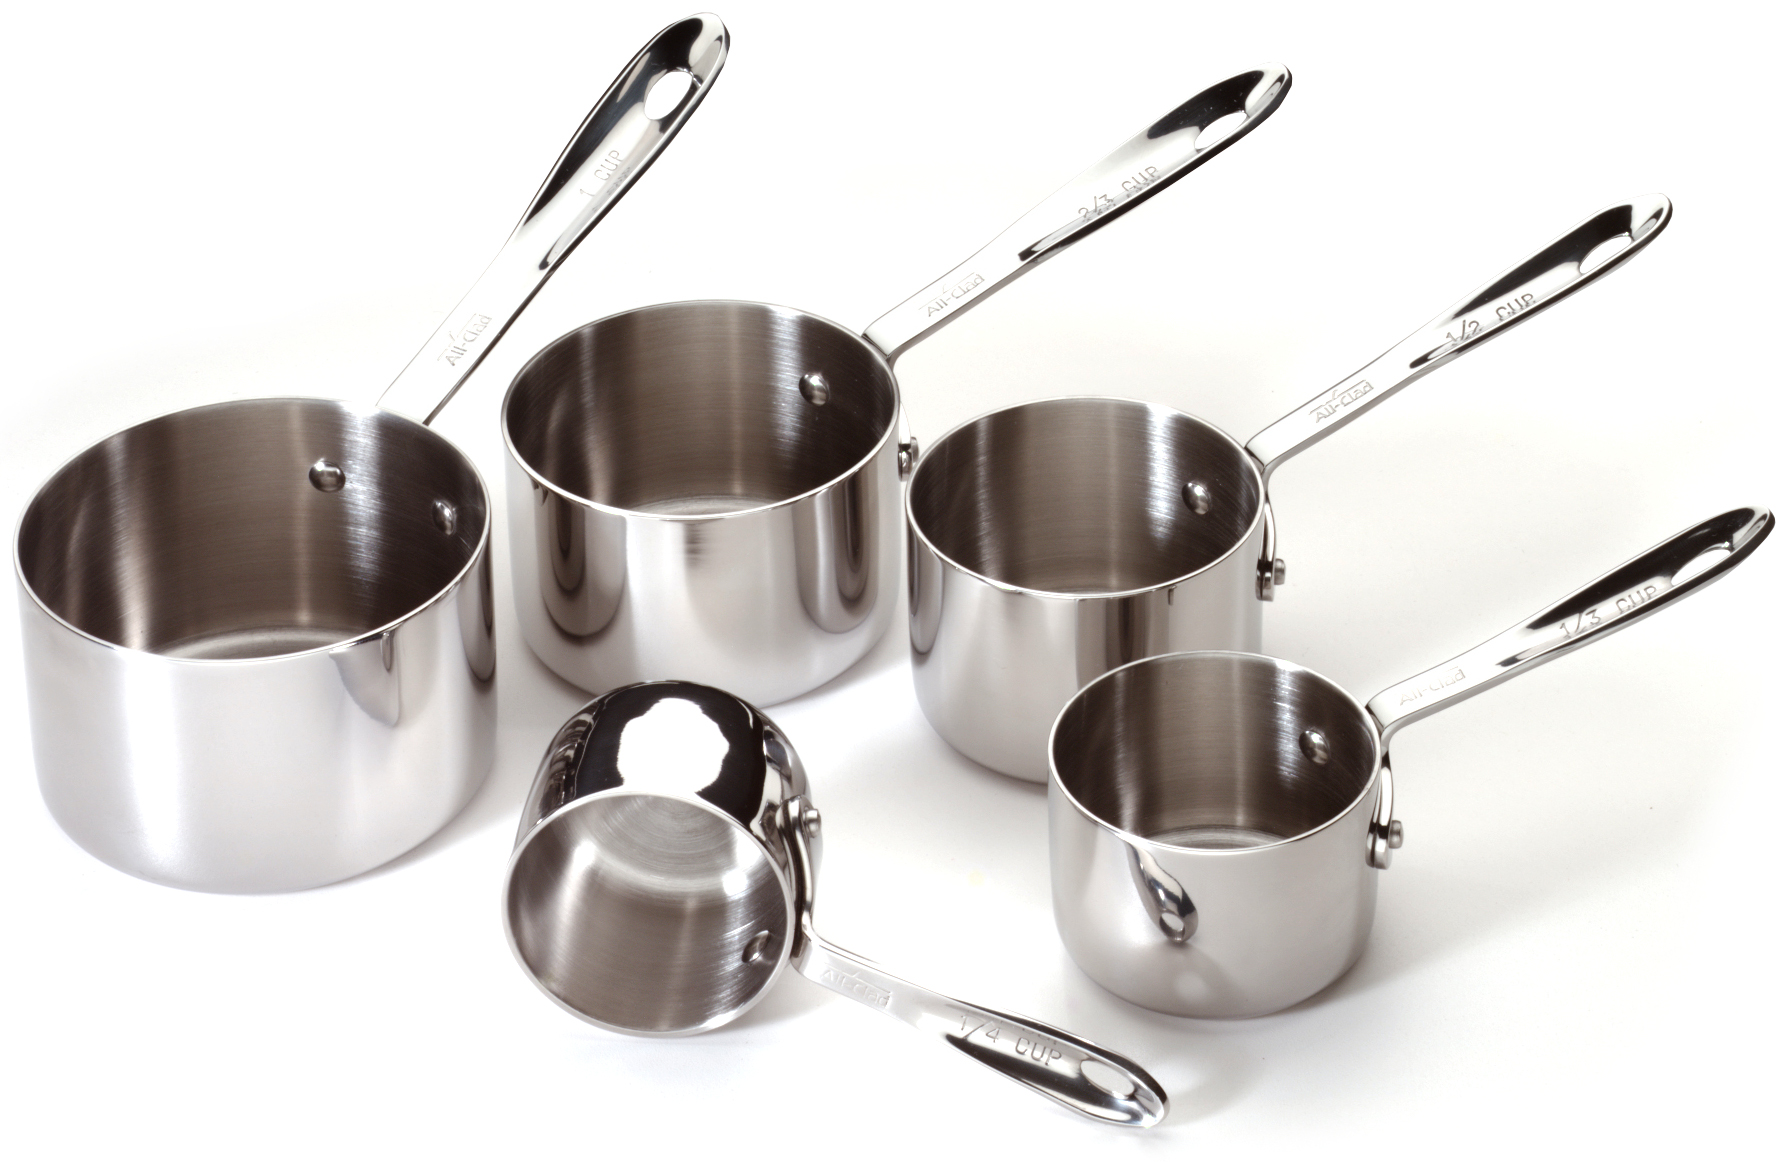 All-Clad Stainless Steel 5 Piece Measuring Cup Set